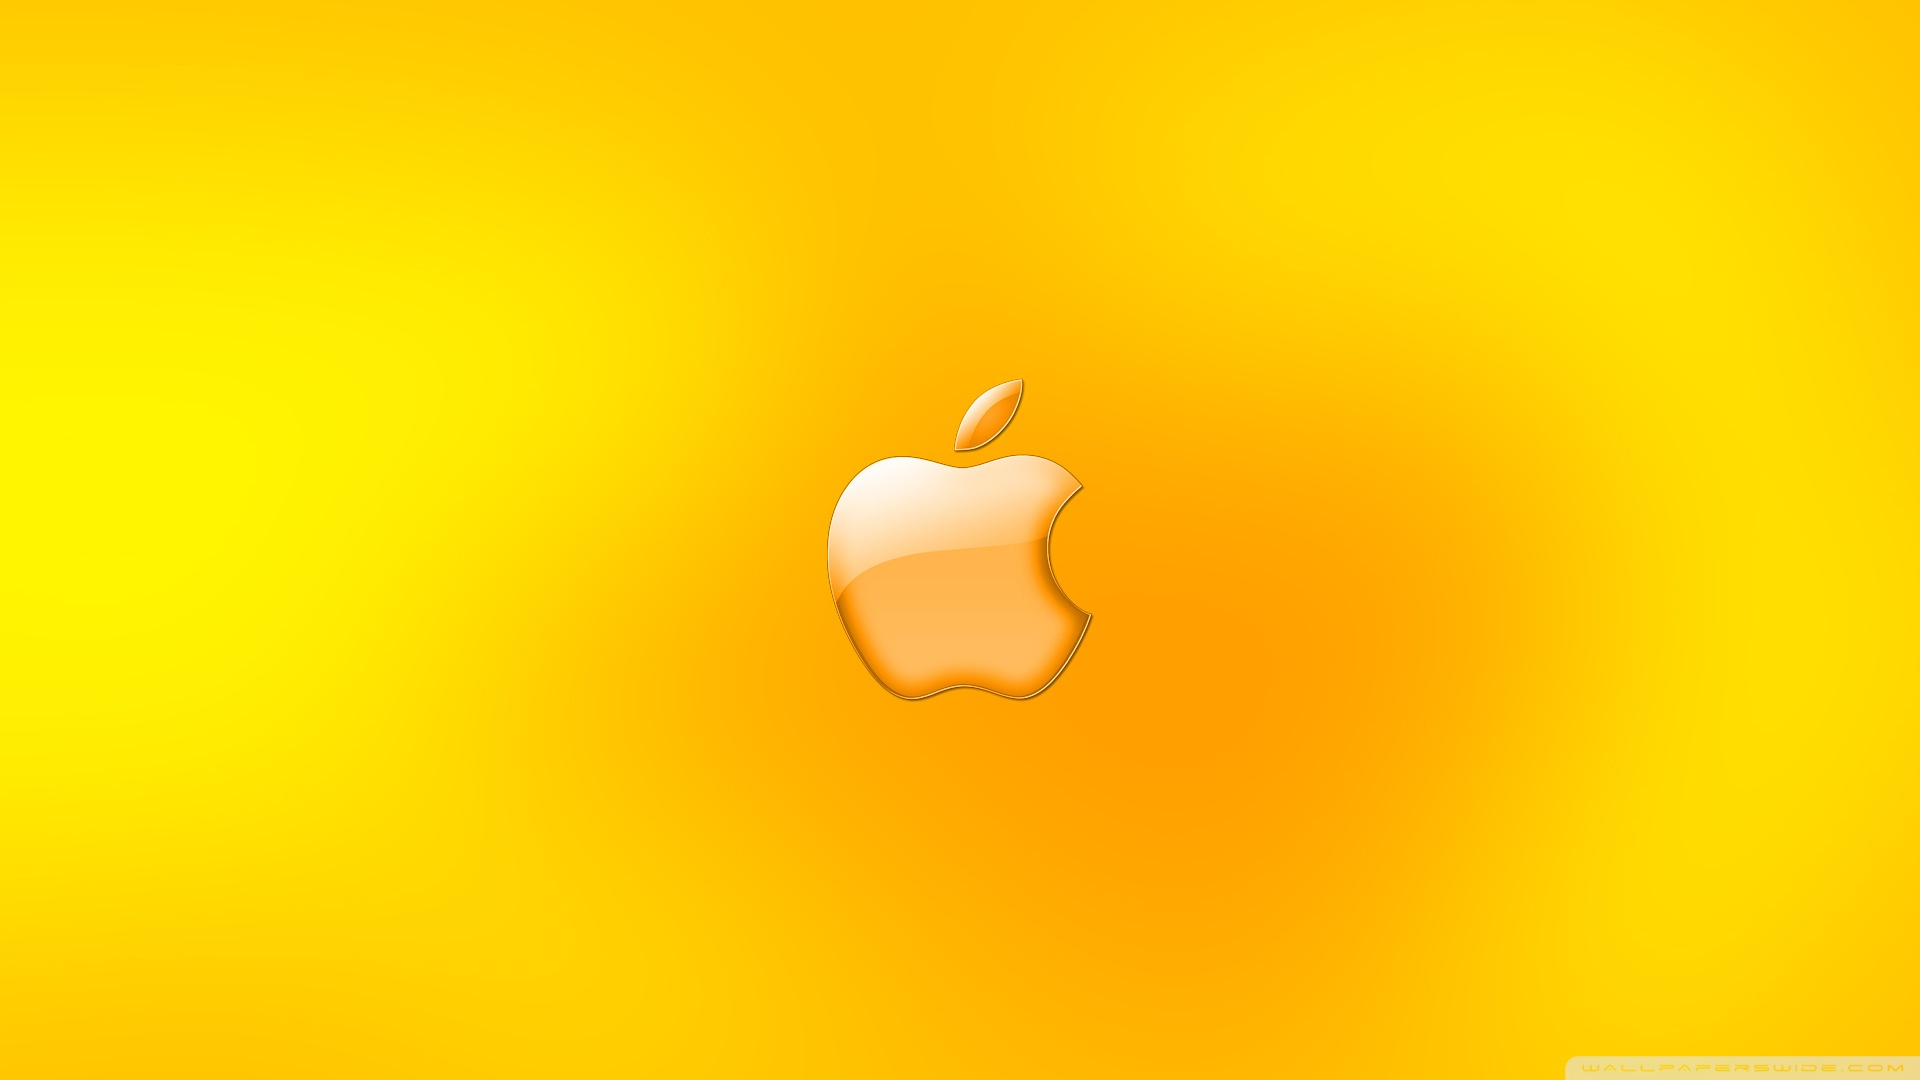 Gold Apple Logos